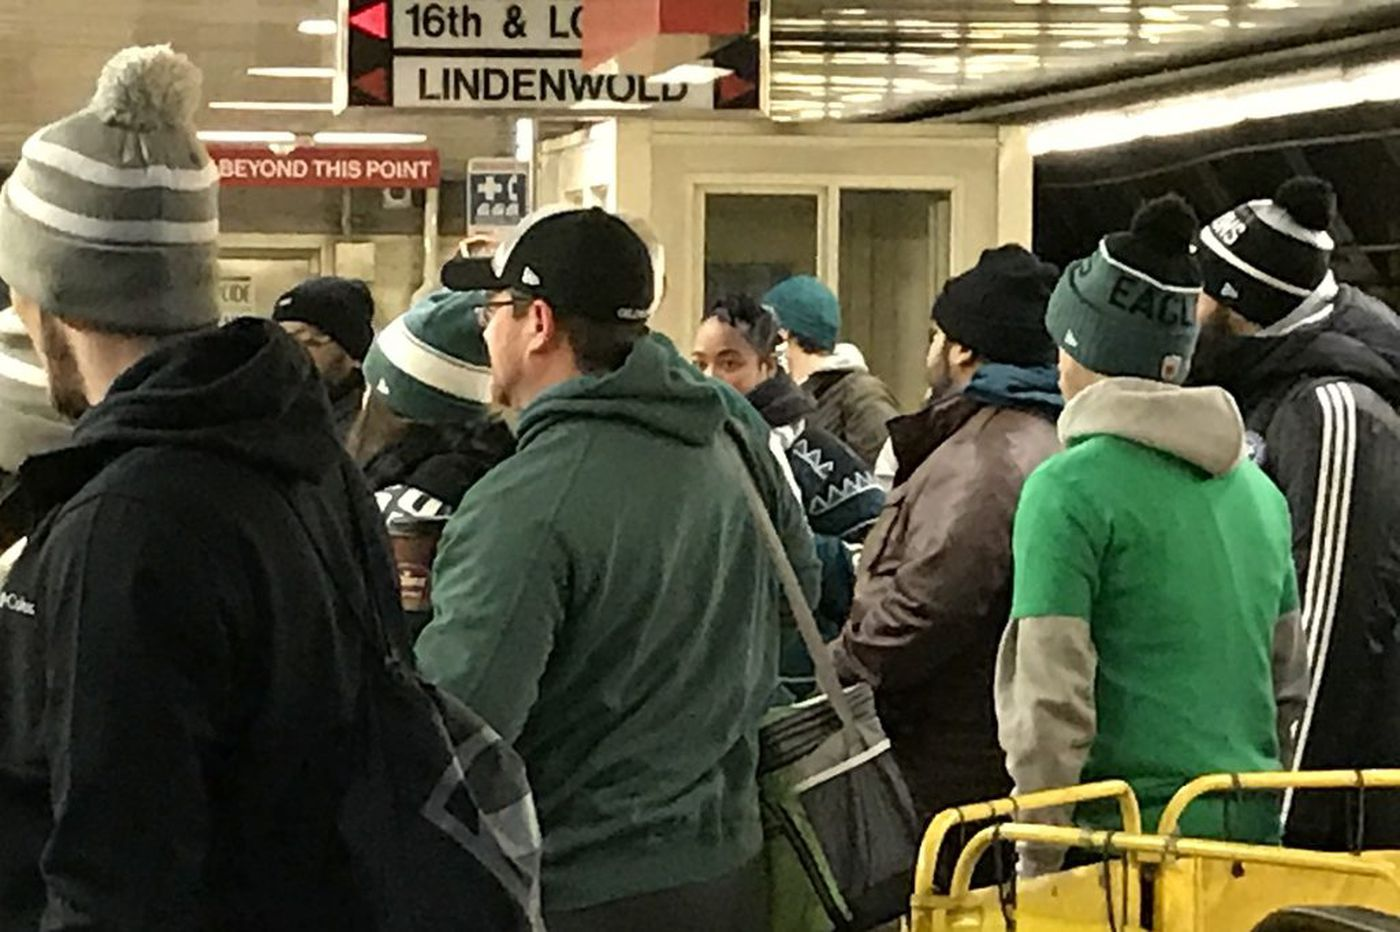 Eagles parade: Tracking SEPTA, PATCO, other transportation as Philadelphia celebrates Super Bowl